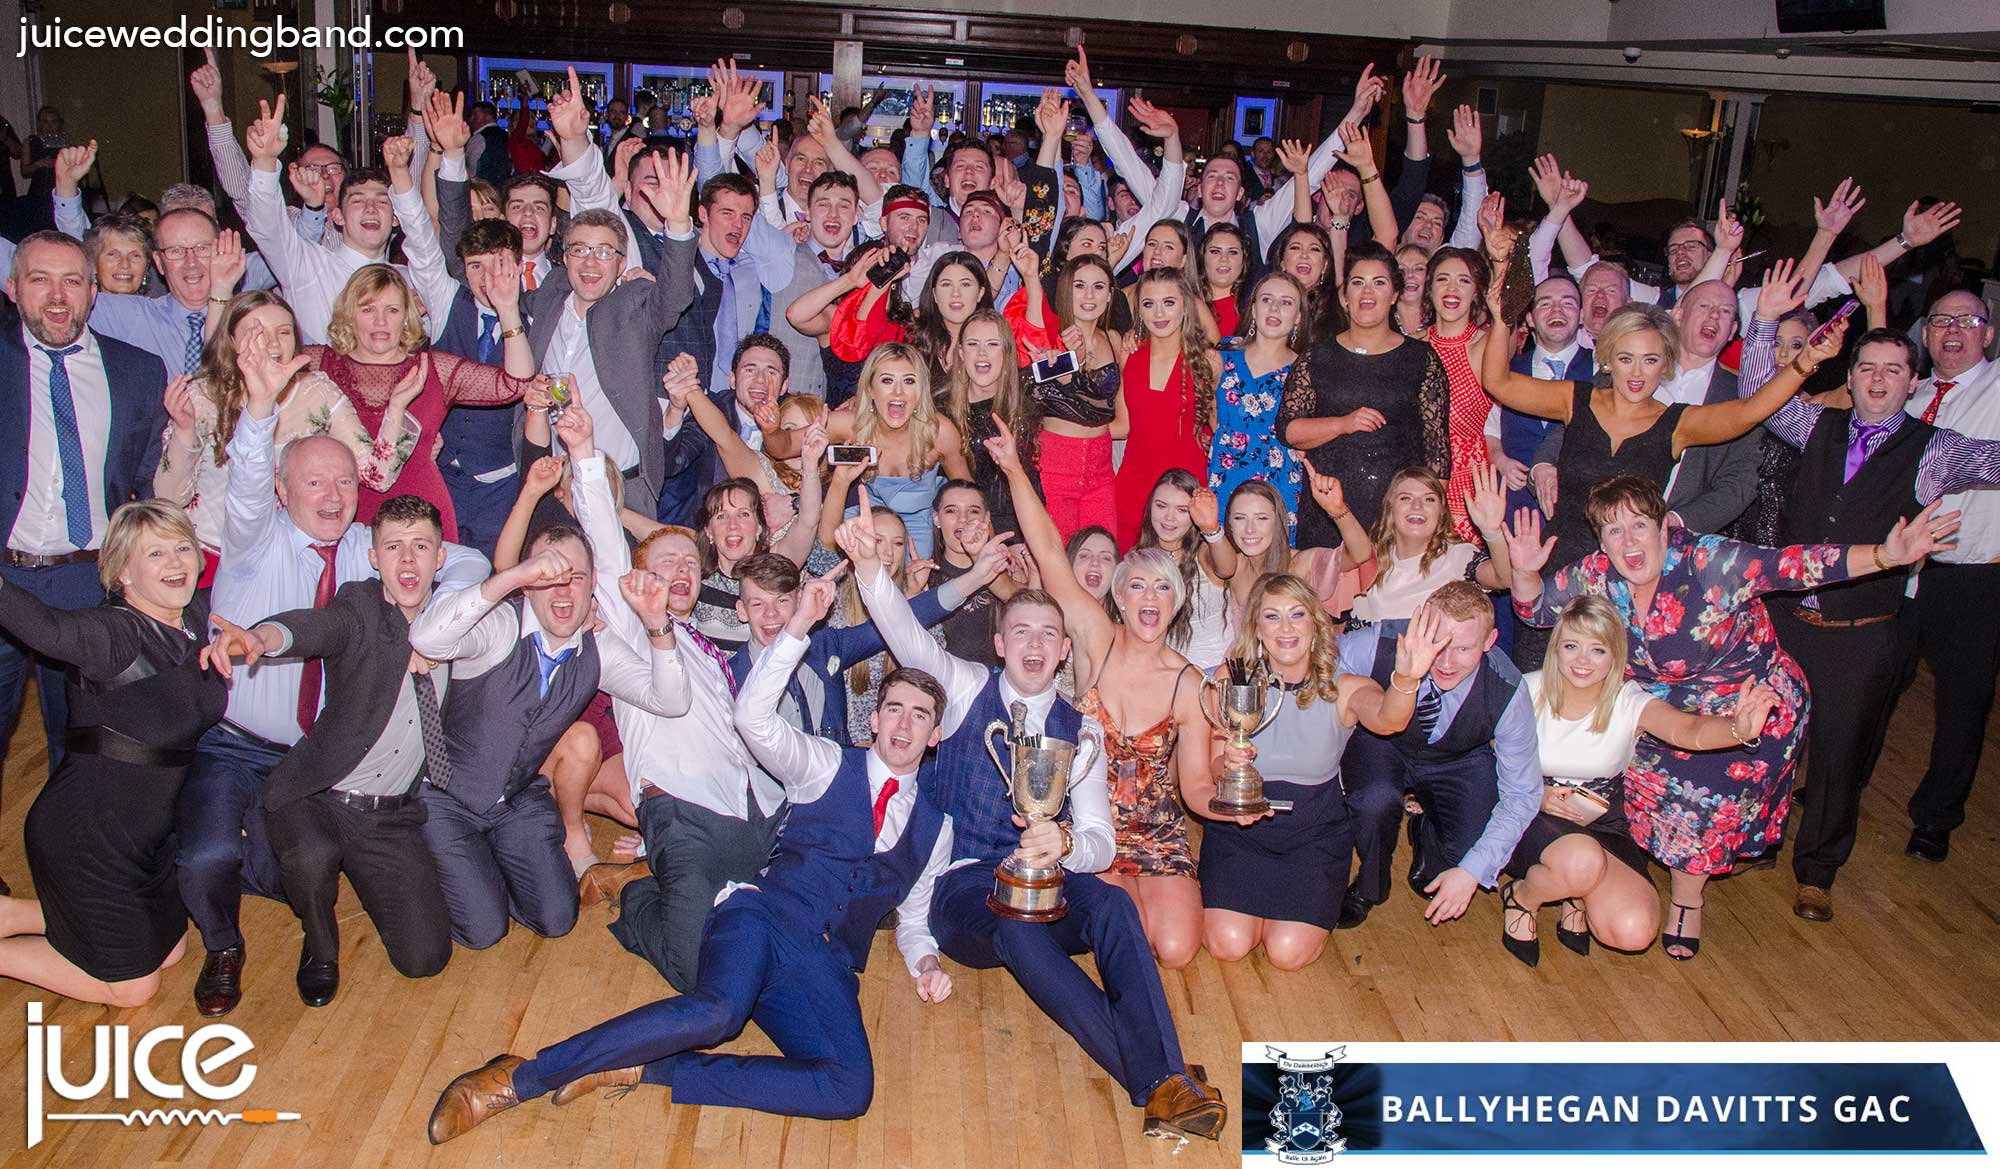 Photo of the guests at the Ballyhegan Davitts GAC dinner dance